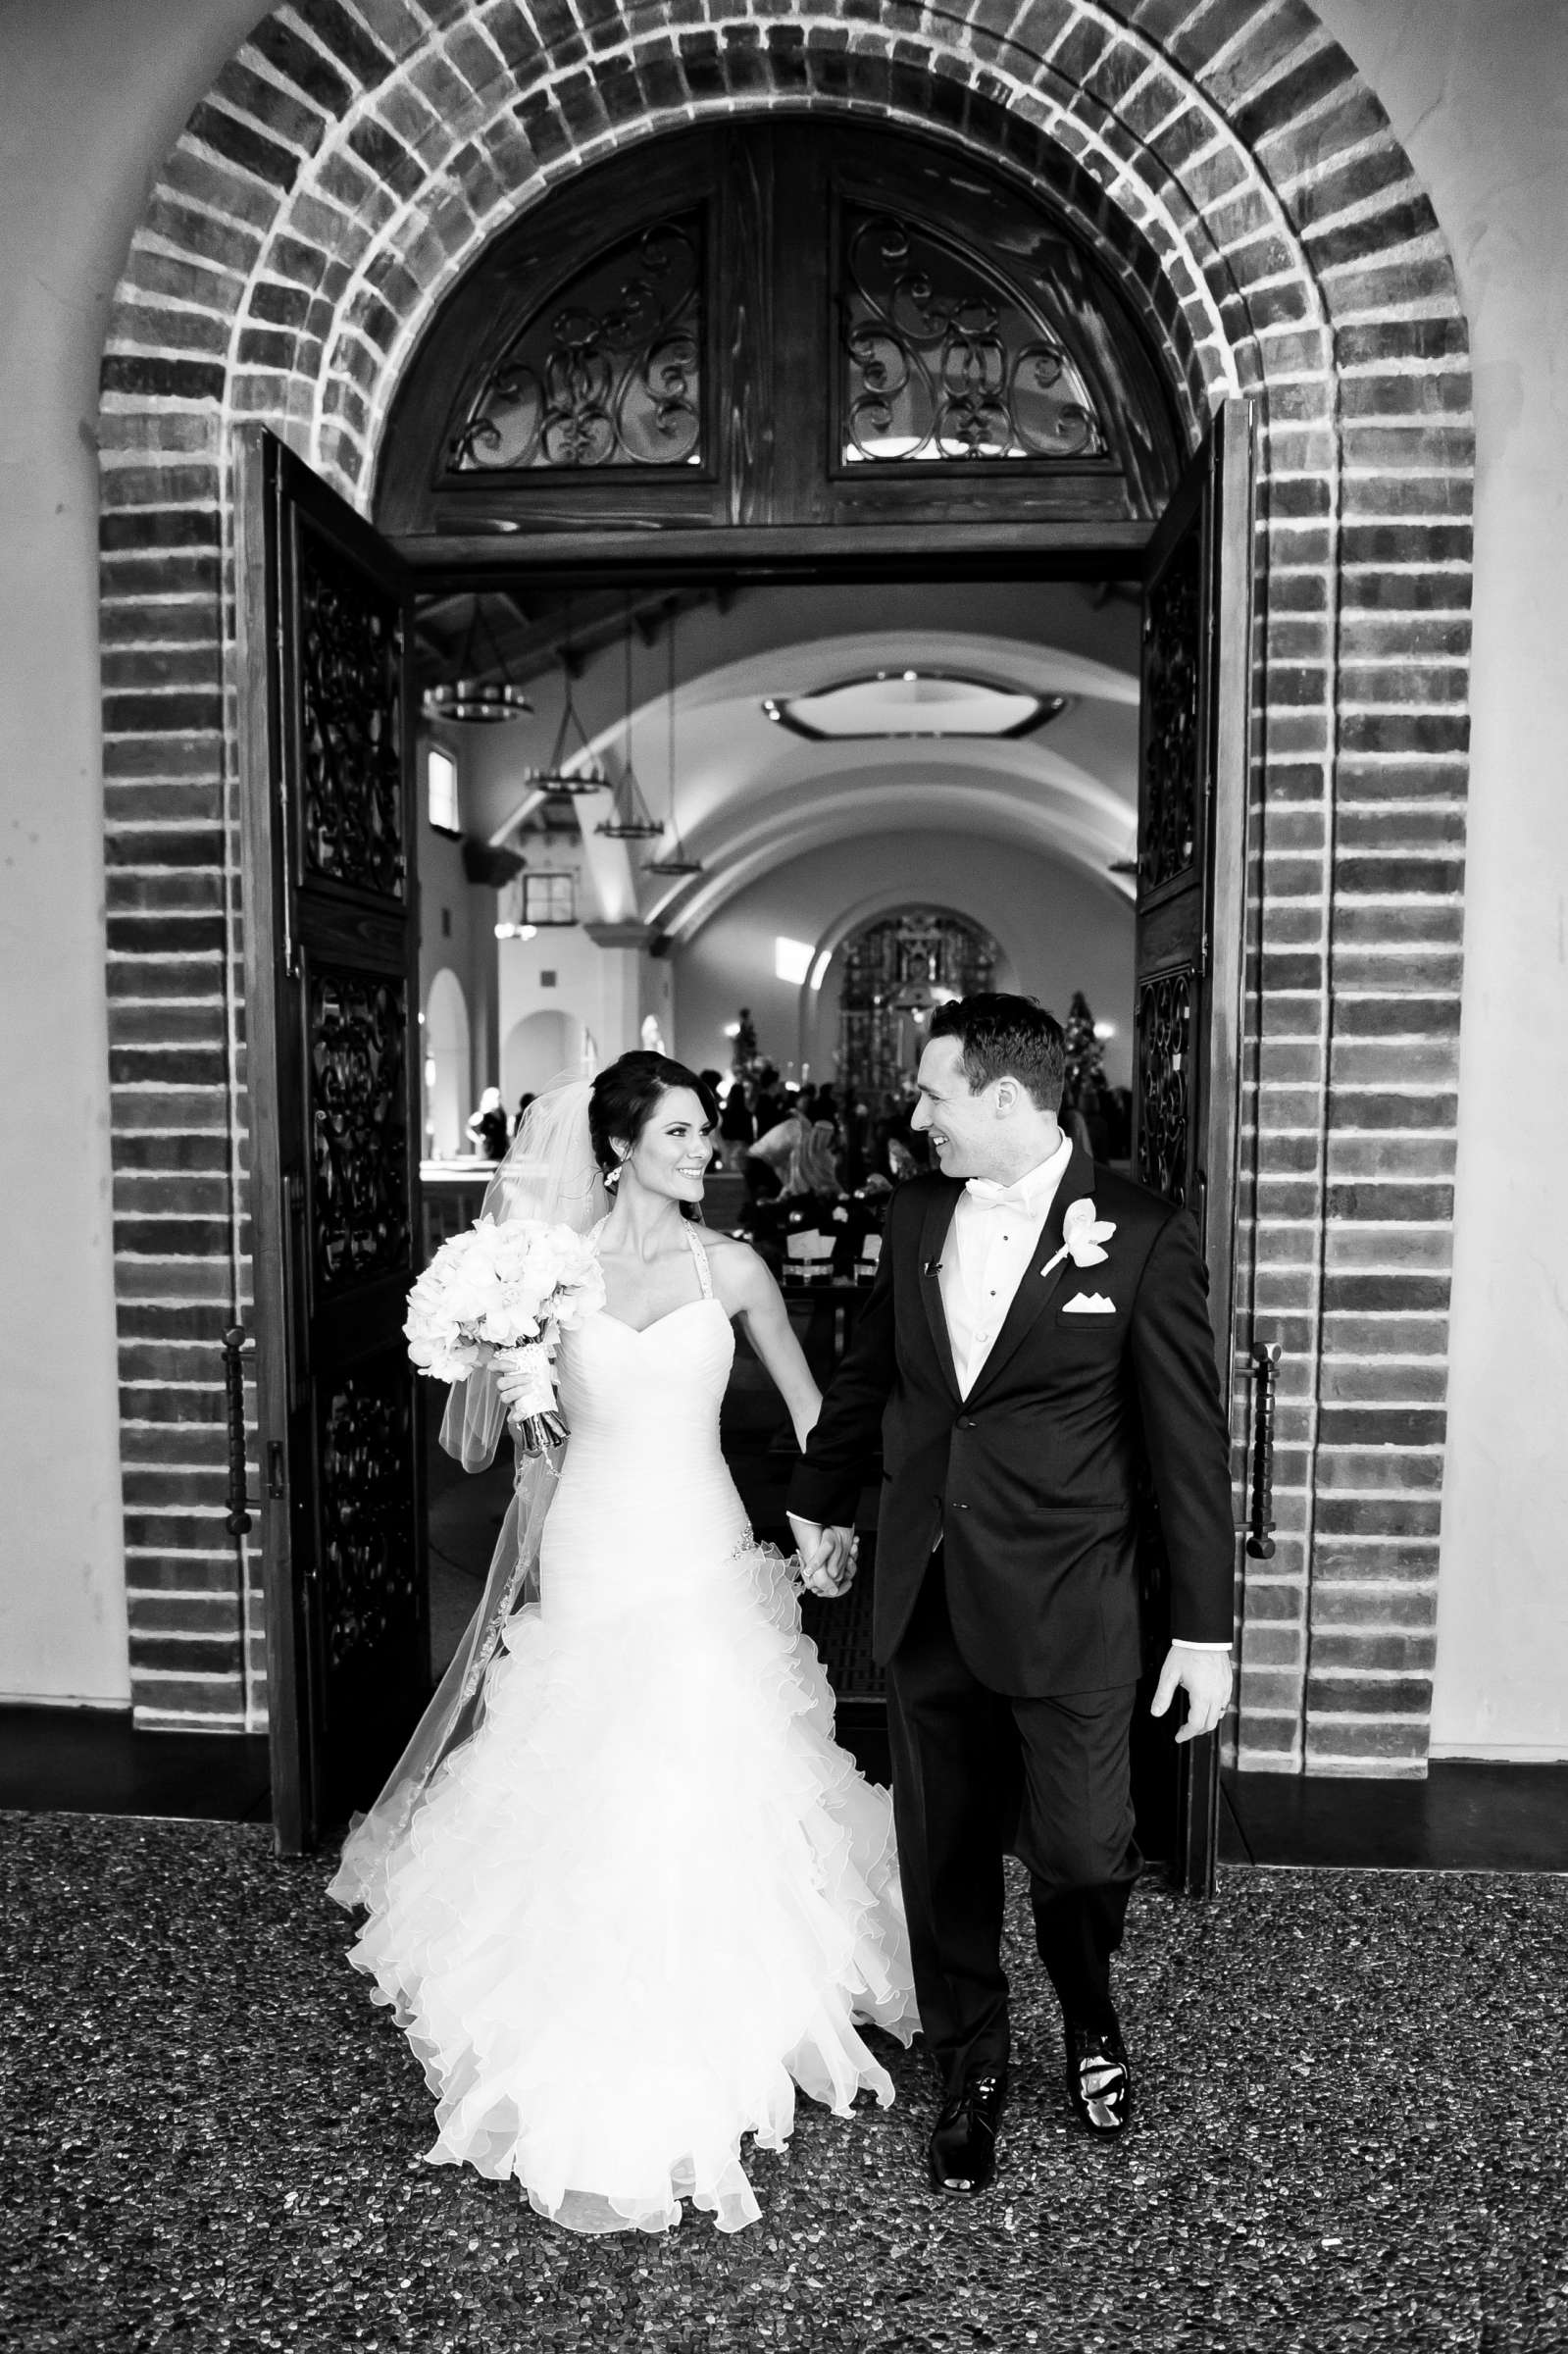 Fairmont Grand Del Mar Wedding, Angela and Tom Wedding Photo #36 by True Photography